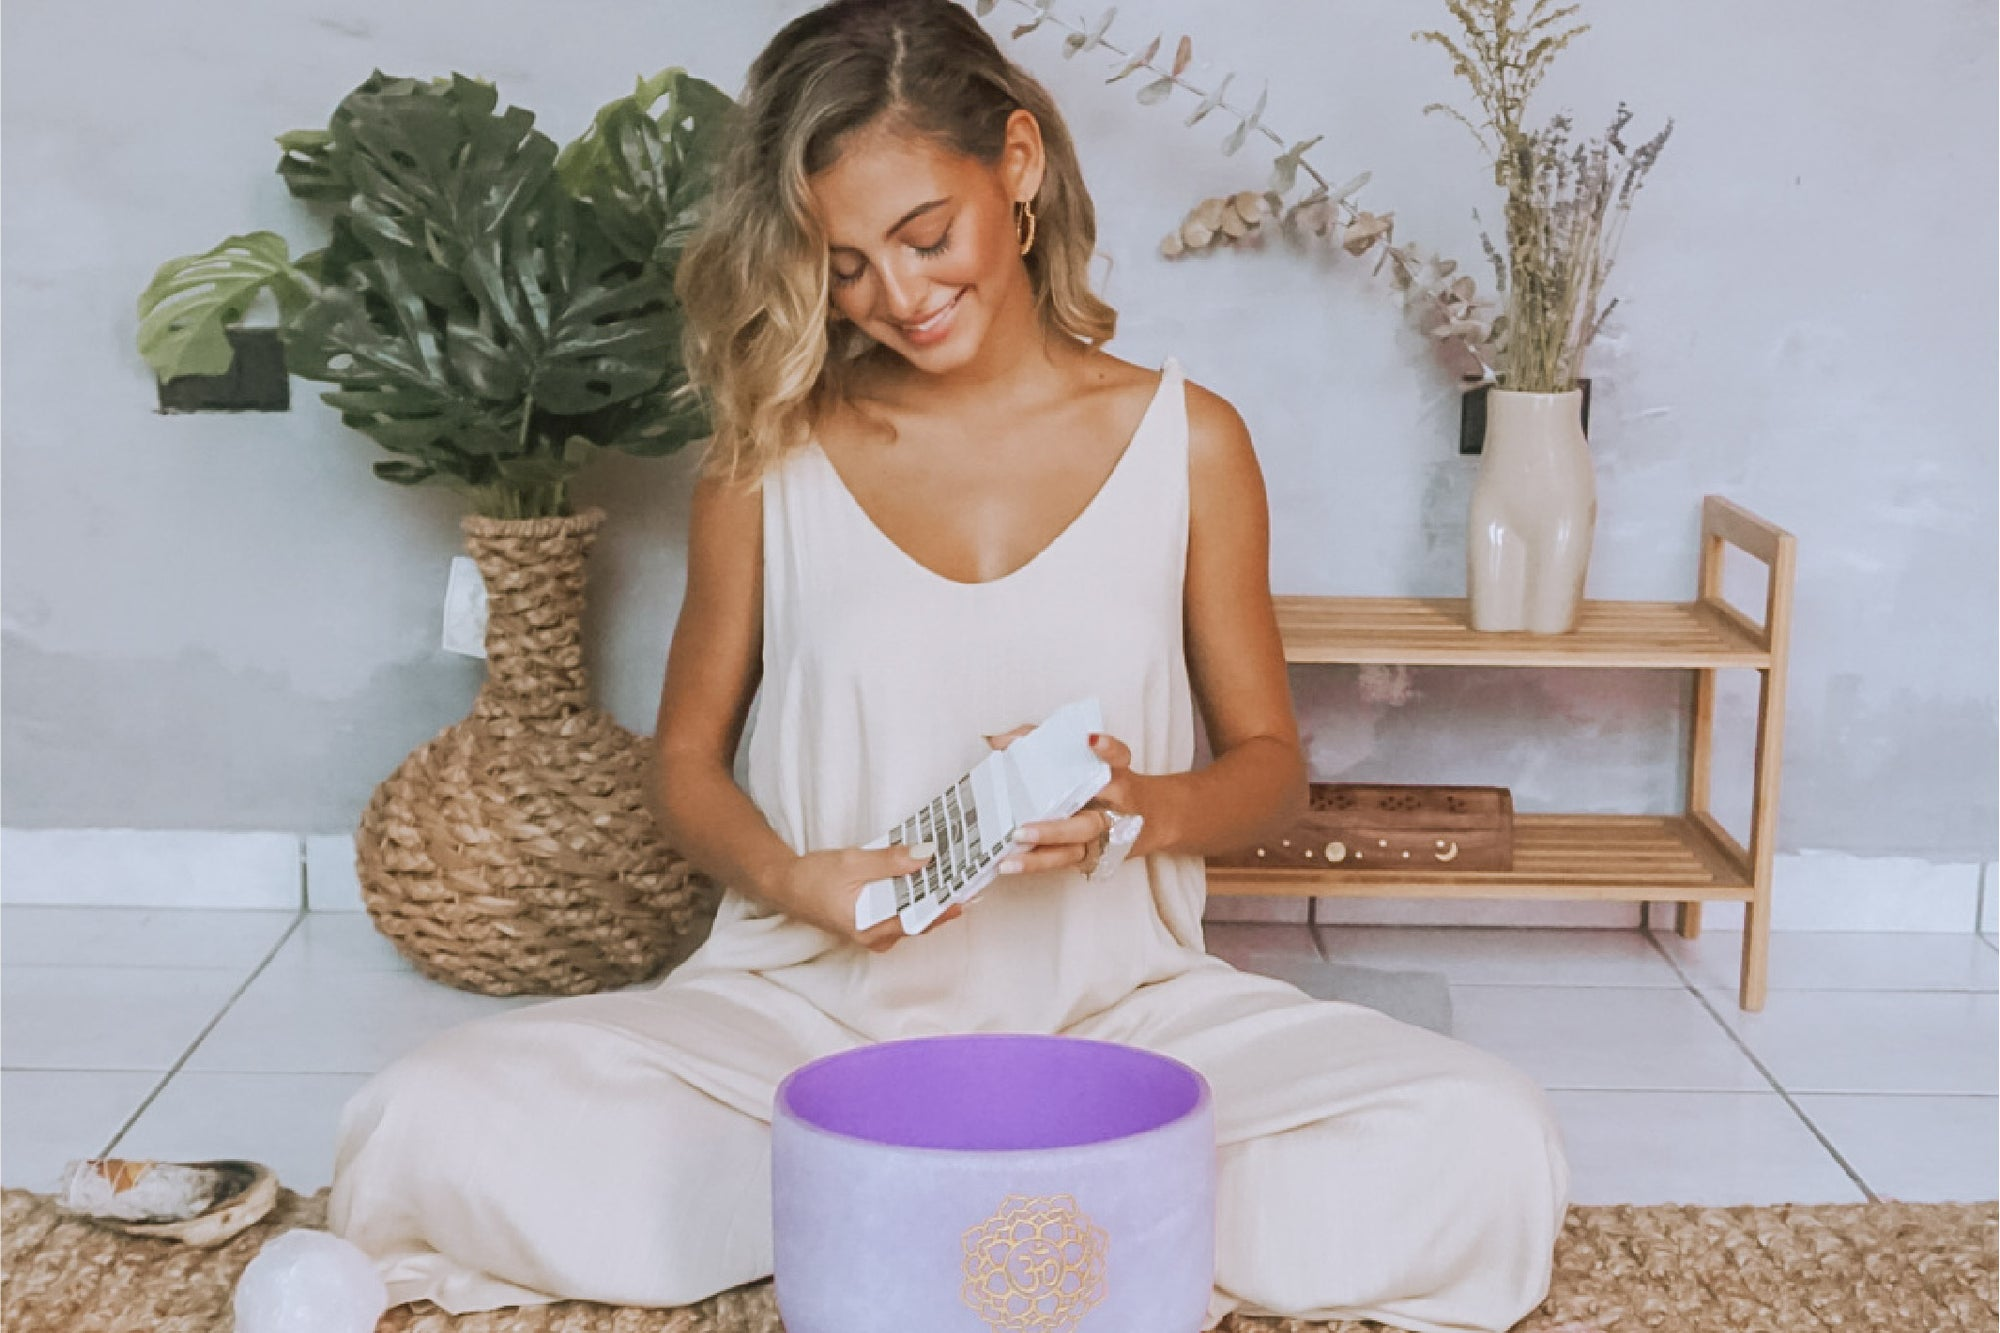 Picture of Amanda Antonella meditating with crystals and a singing bowl